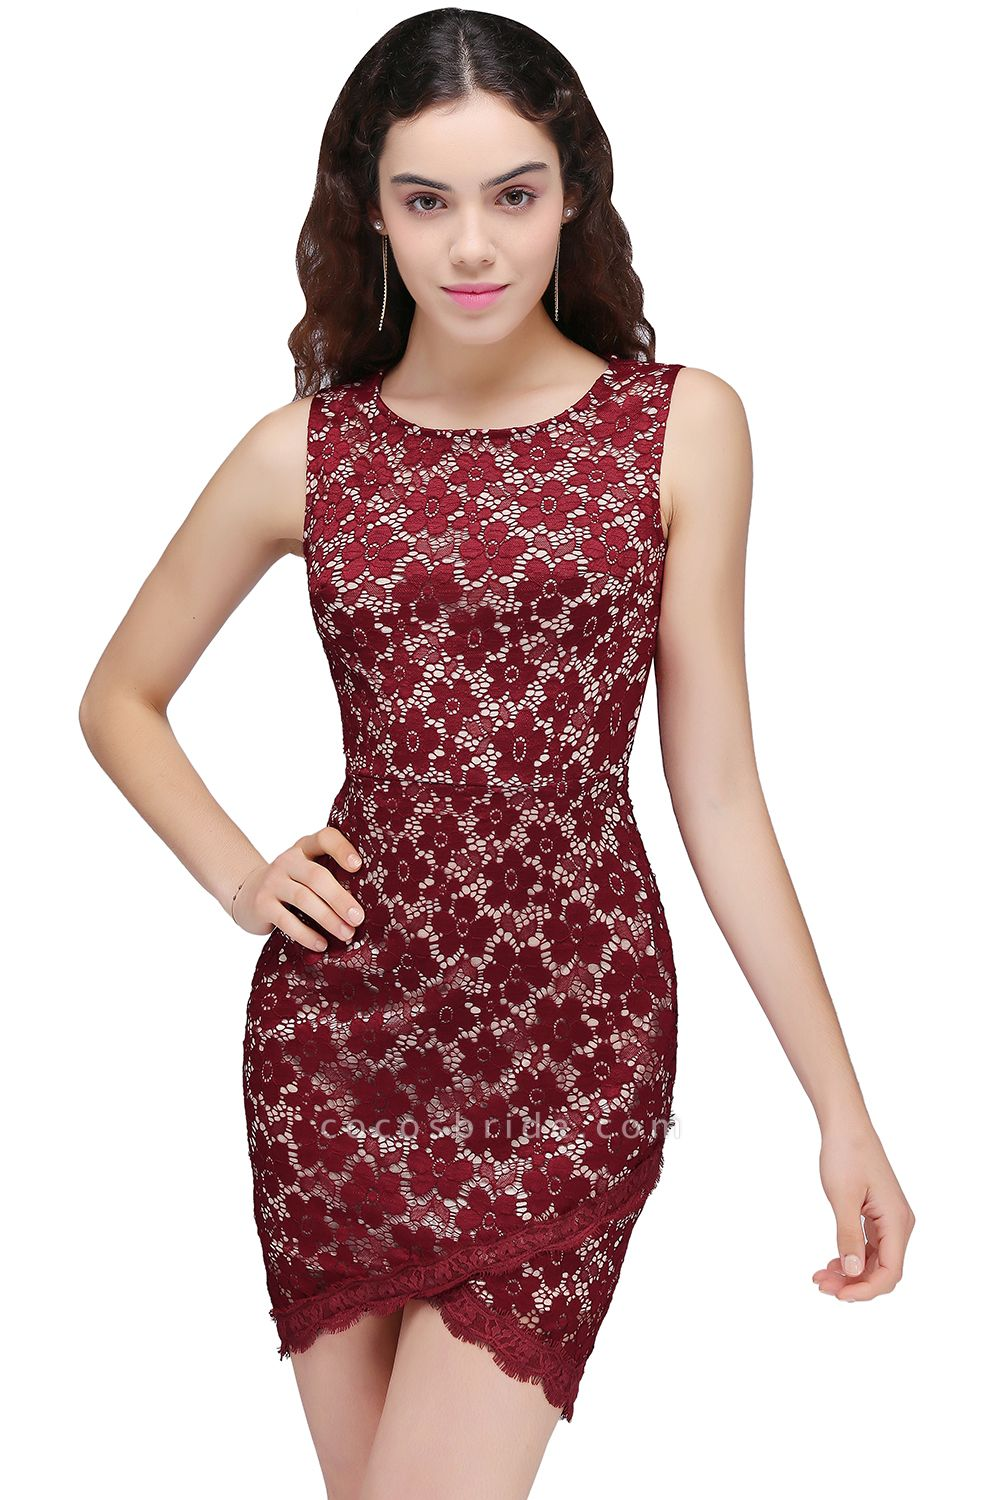 Burgundy Bodycon Round Neck Short Lace Homecoming Dresses